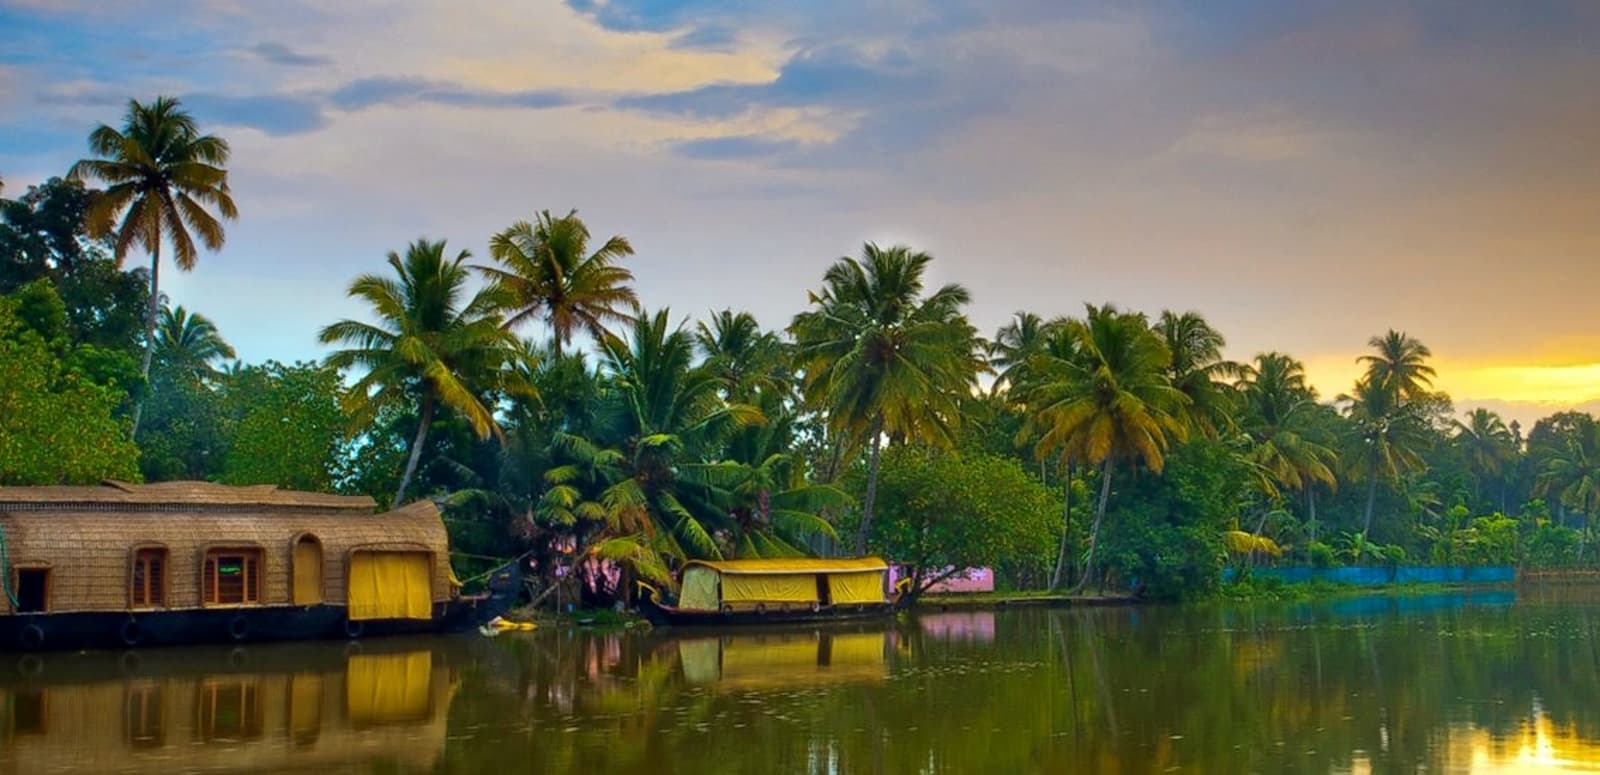 Kumarakom-by_karthick_ramachandran-flickr.jpg